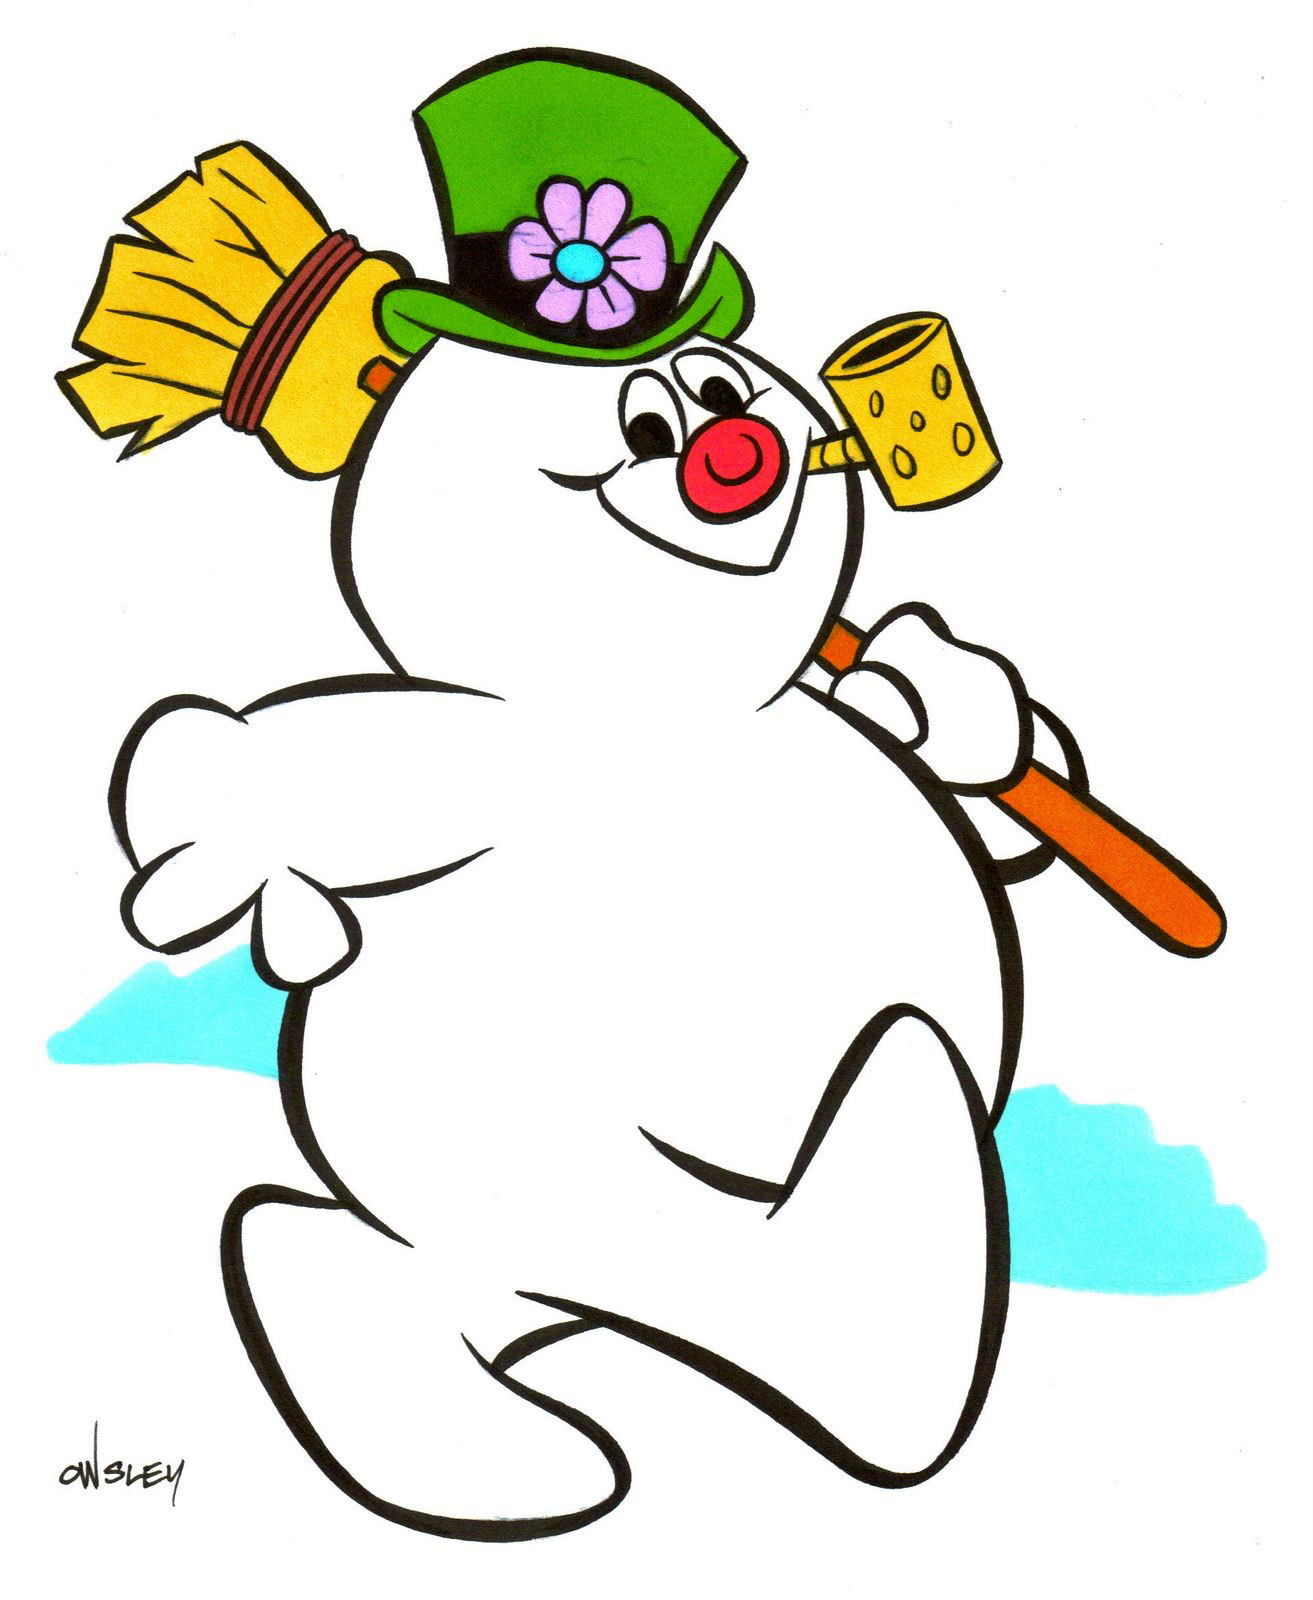 Patrick Owsley Cartoon Art and More!: FROSTY THE SNOWMAN ORIGINAL ...